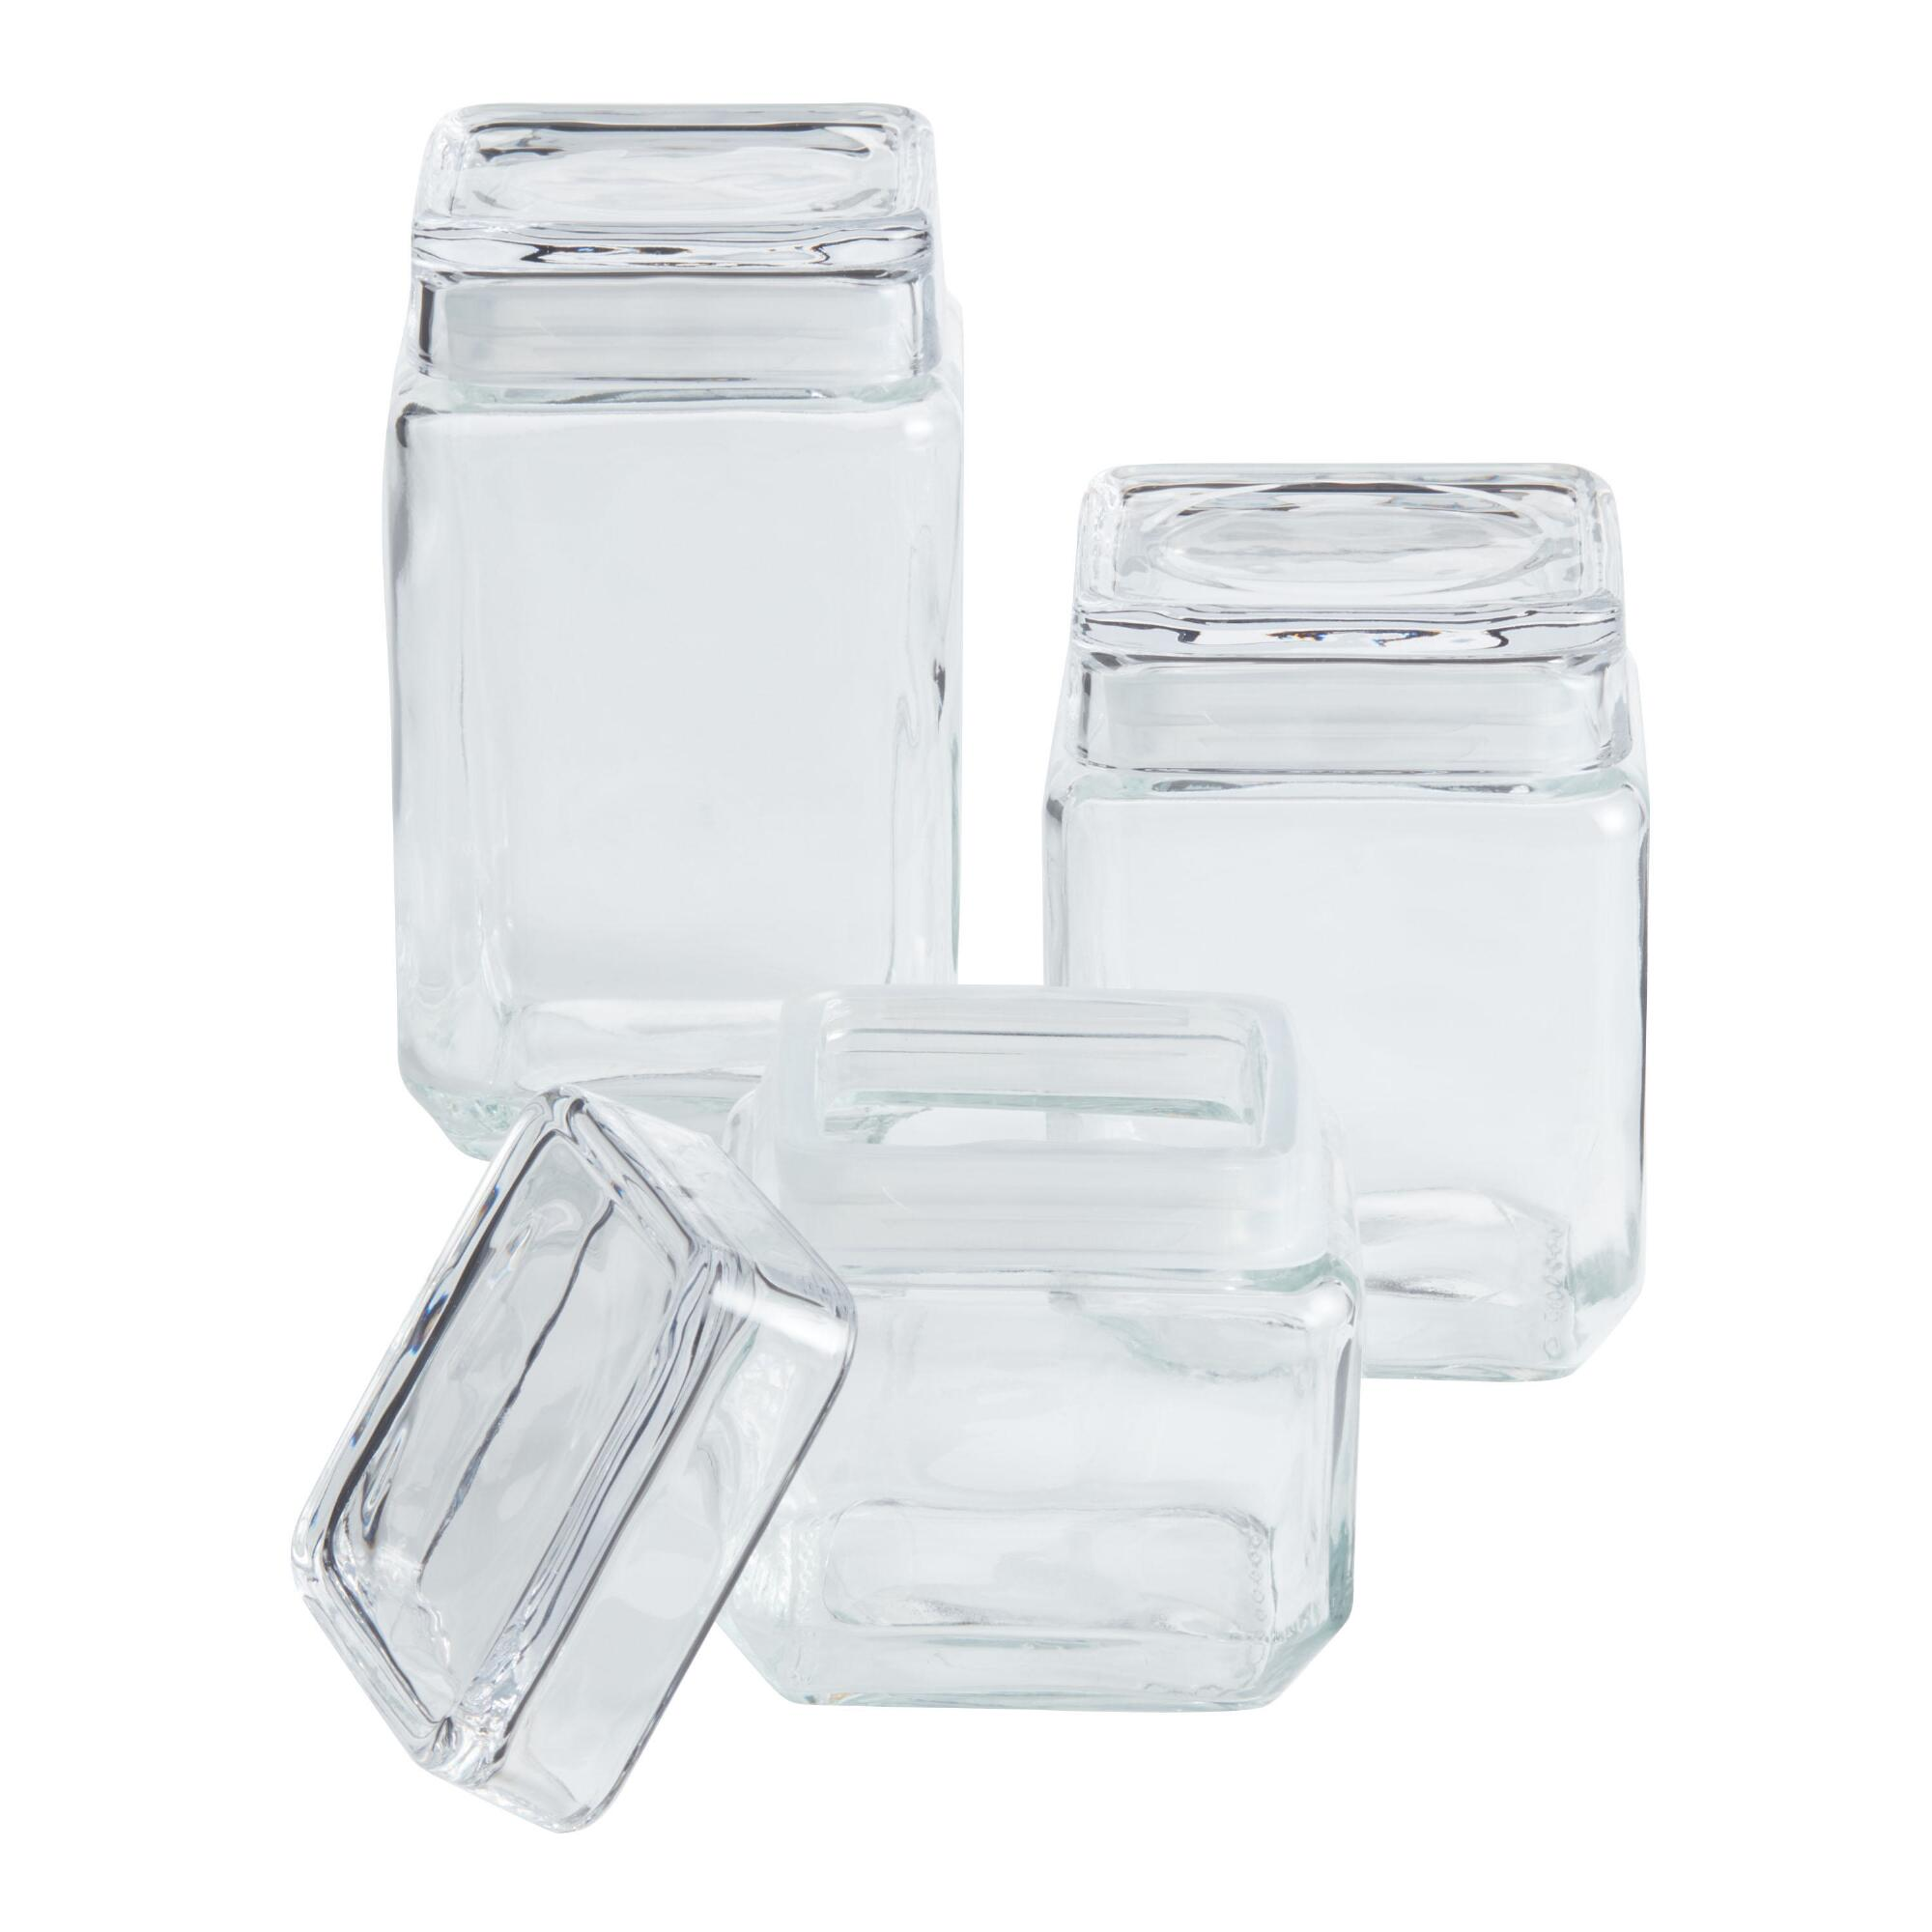 Stackable Square Glass Jars With Lids World Market